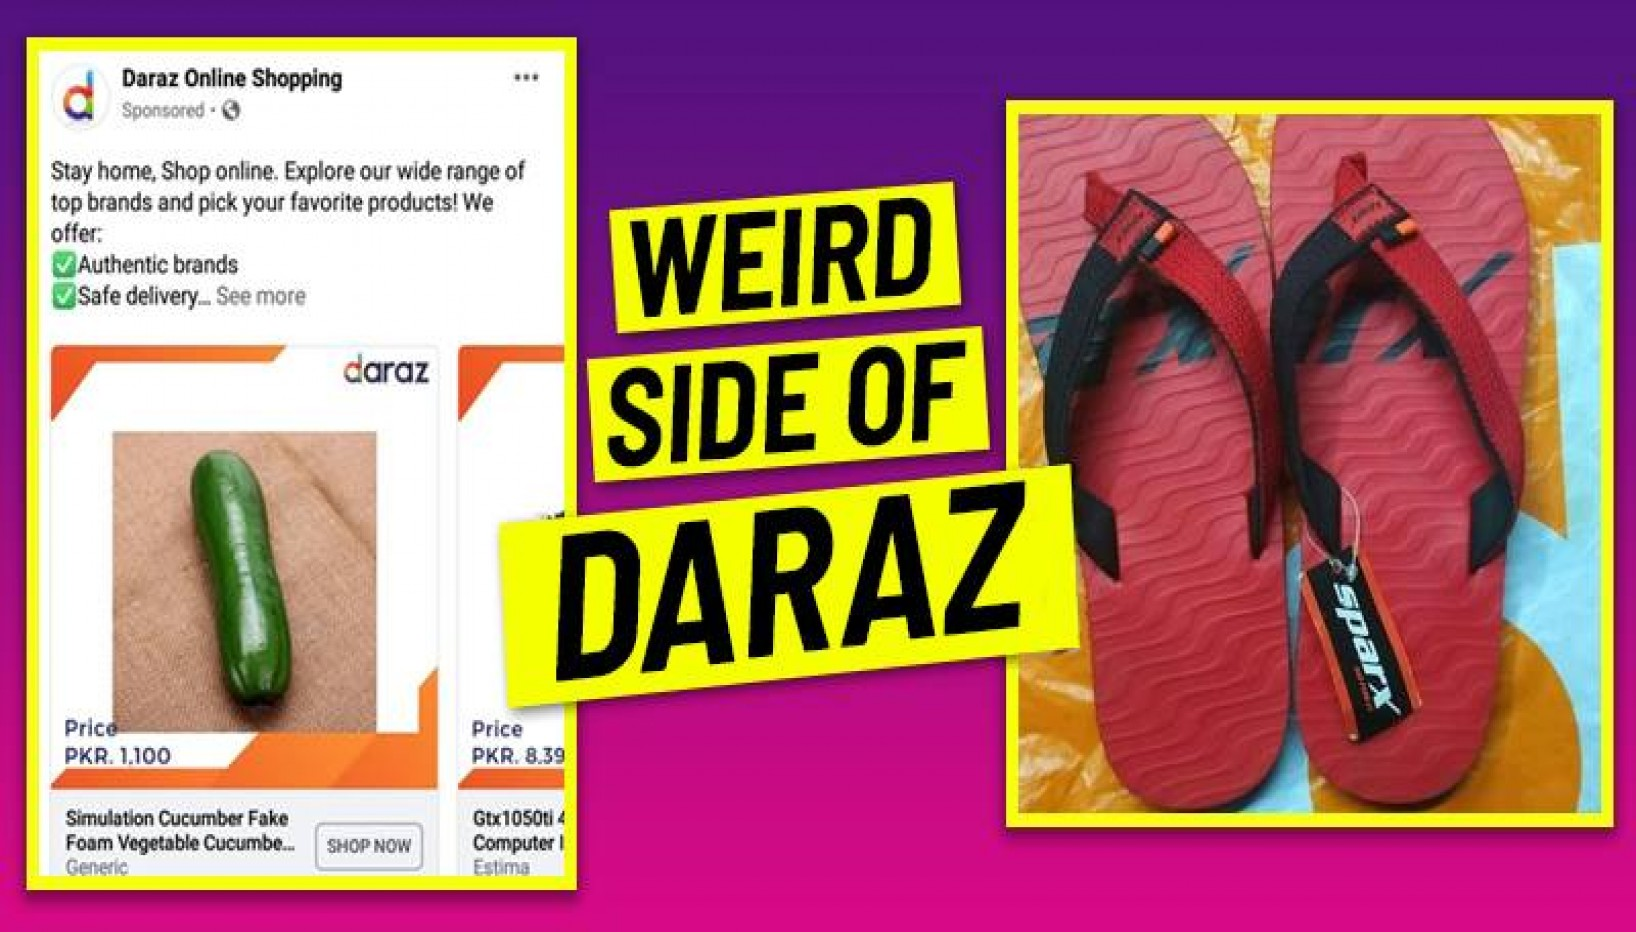 We've Landed On The Weird Side Of Daraz And Hamrobazar, And It's Absolutely Hilarious